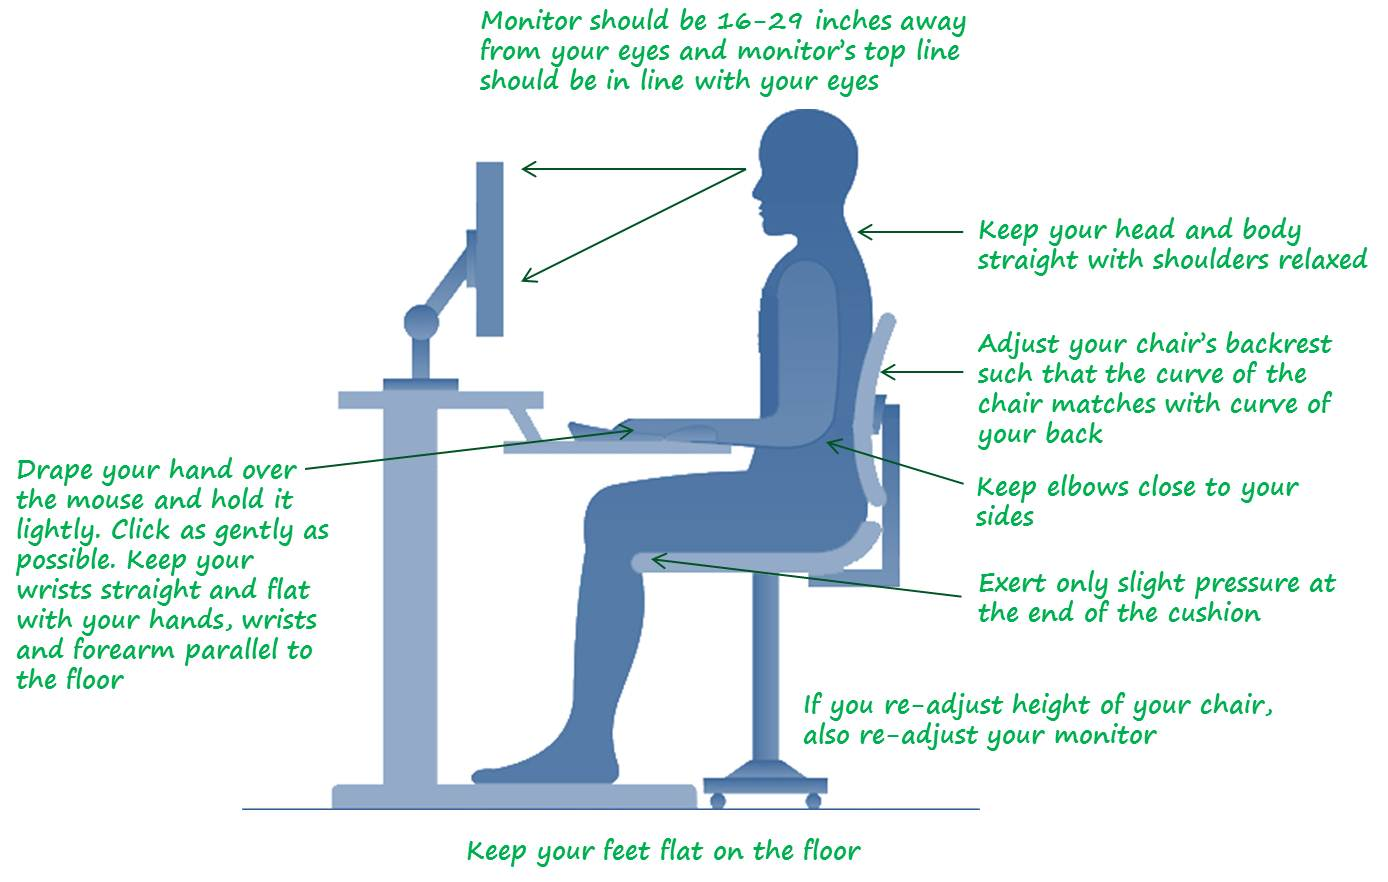 ergonomic chair keyboard position lounge with tablet arm ergonomics in the workplace commercial design control